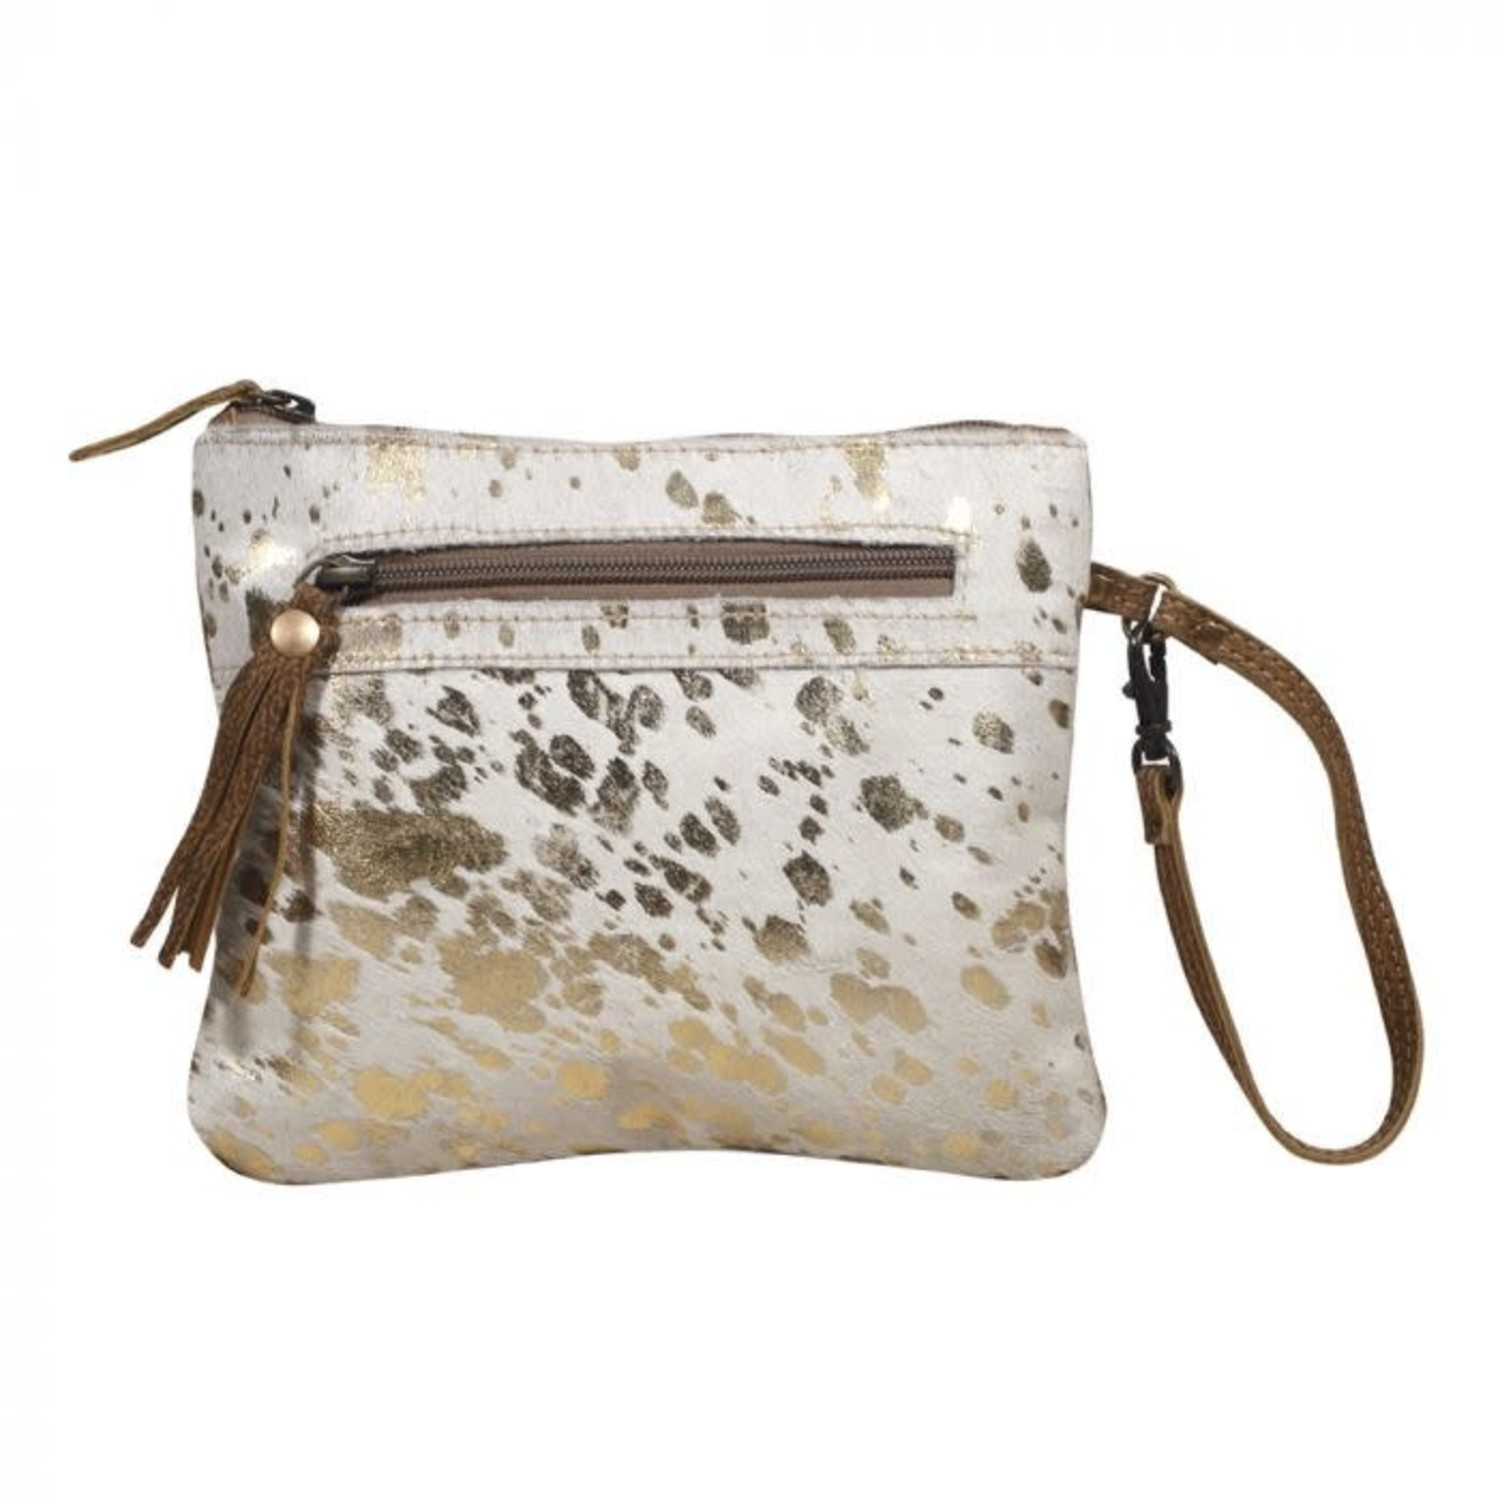 Myra 2081 Spotted Leather Pouch Society Boutique Myra bag cowhide purse handbag medium leather accents vintage fashion. myra handbags myra 2081 spotted leather pouch